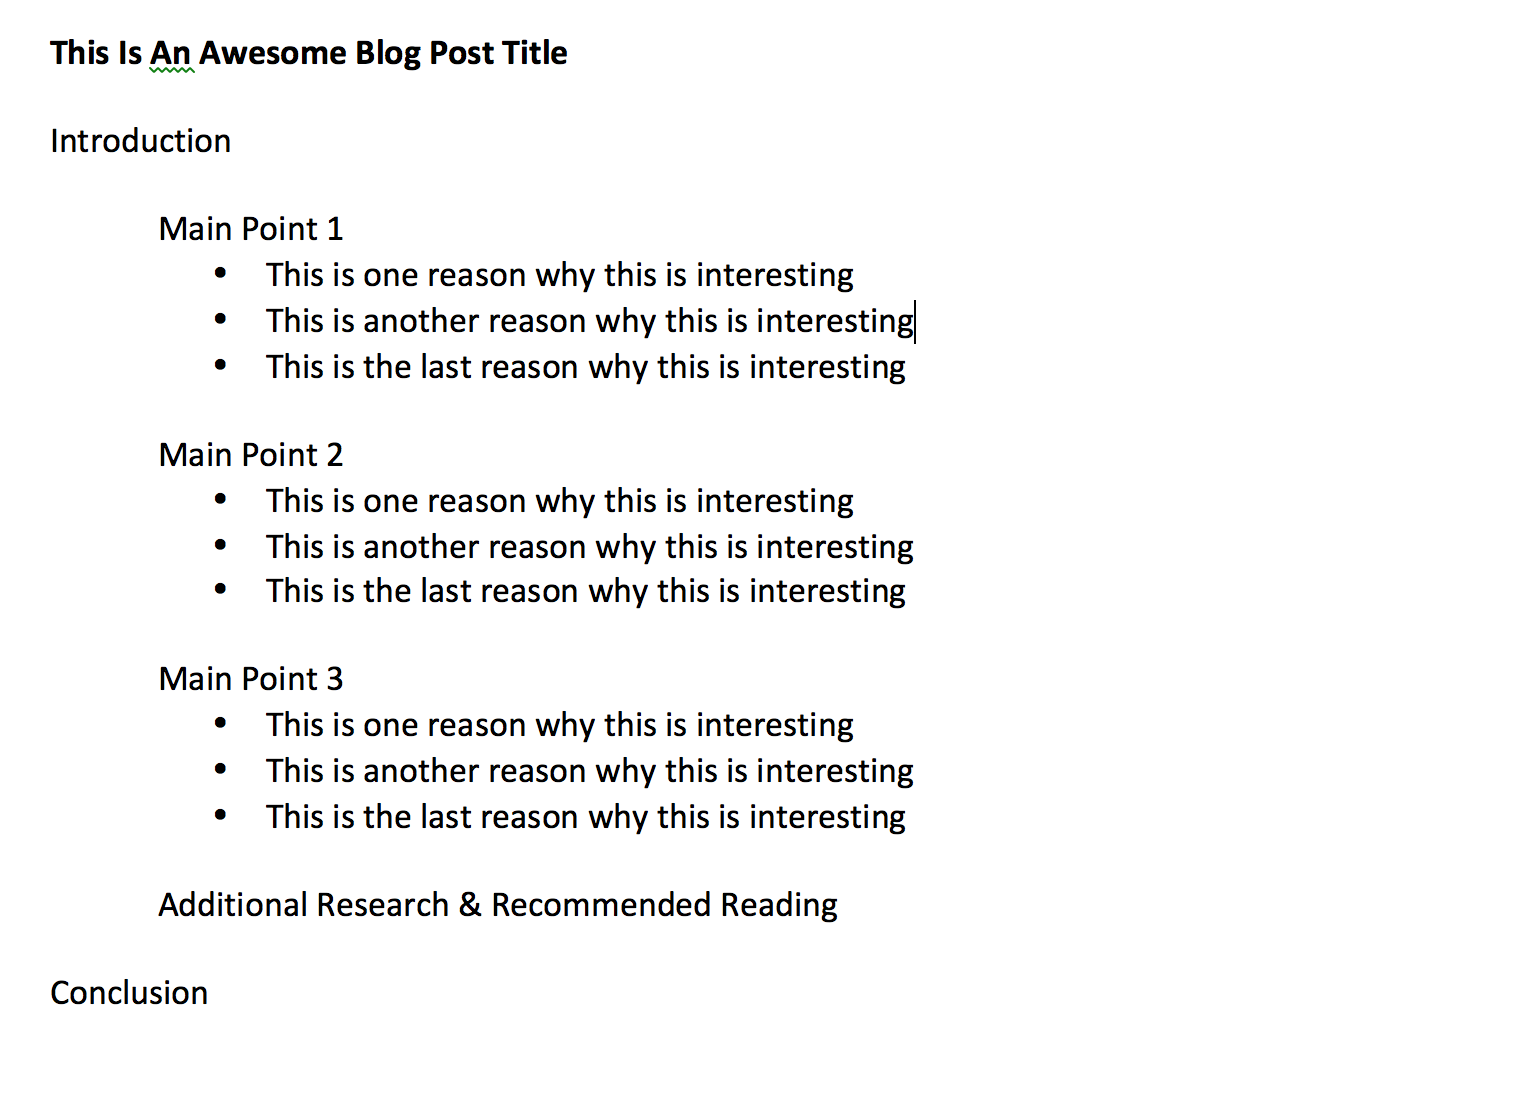 Example of a rough blog post outline  Blog post titles, Blog